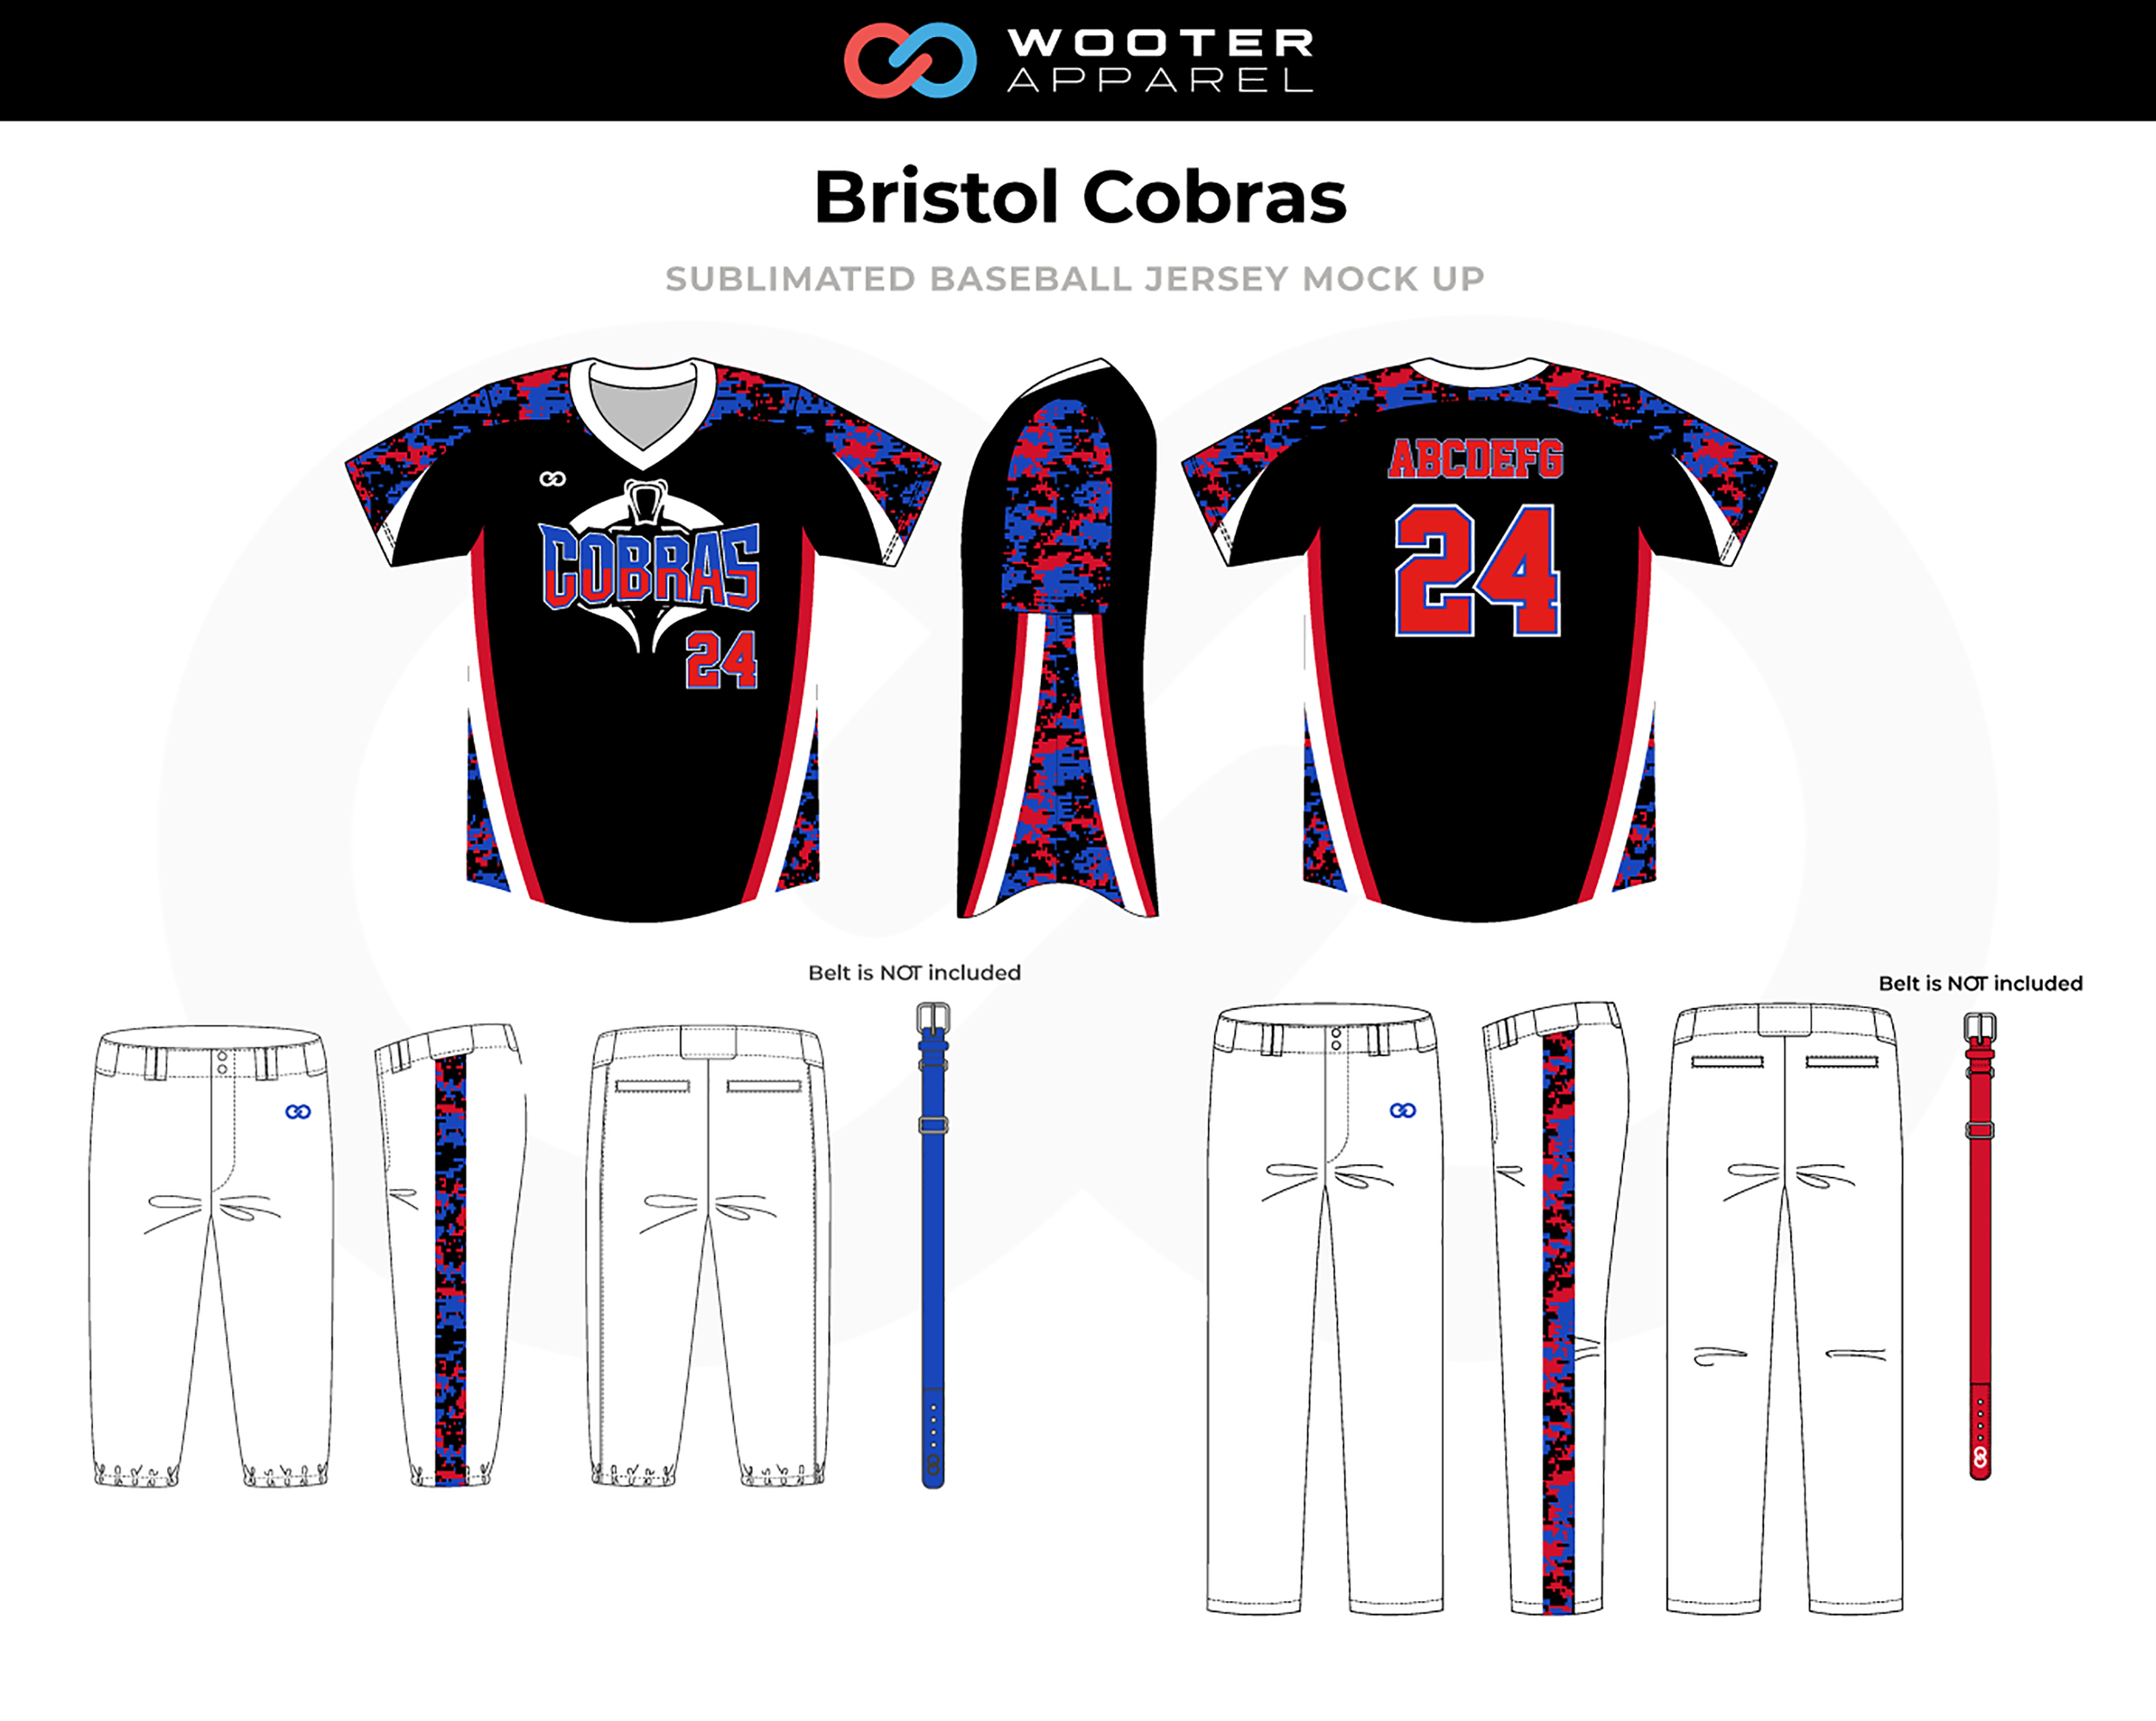 Bristol-Cobras-Sublimated-Baseball-Uniform.png